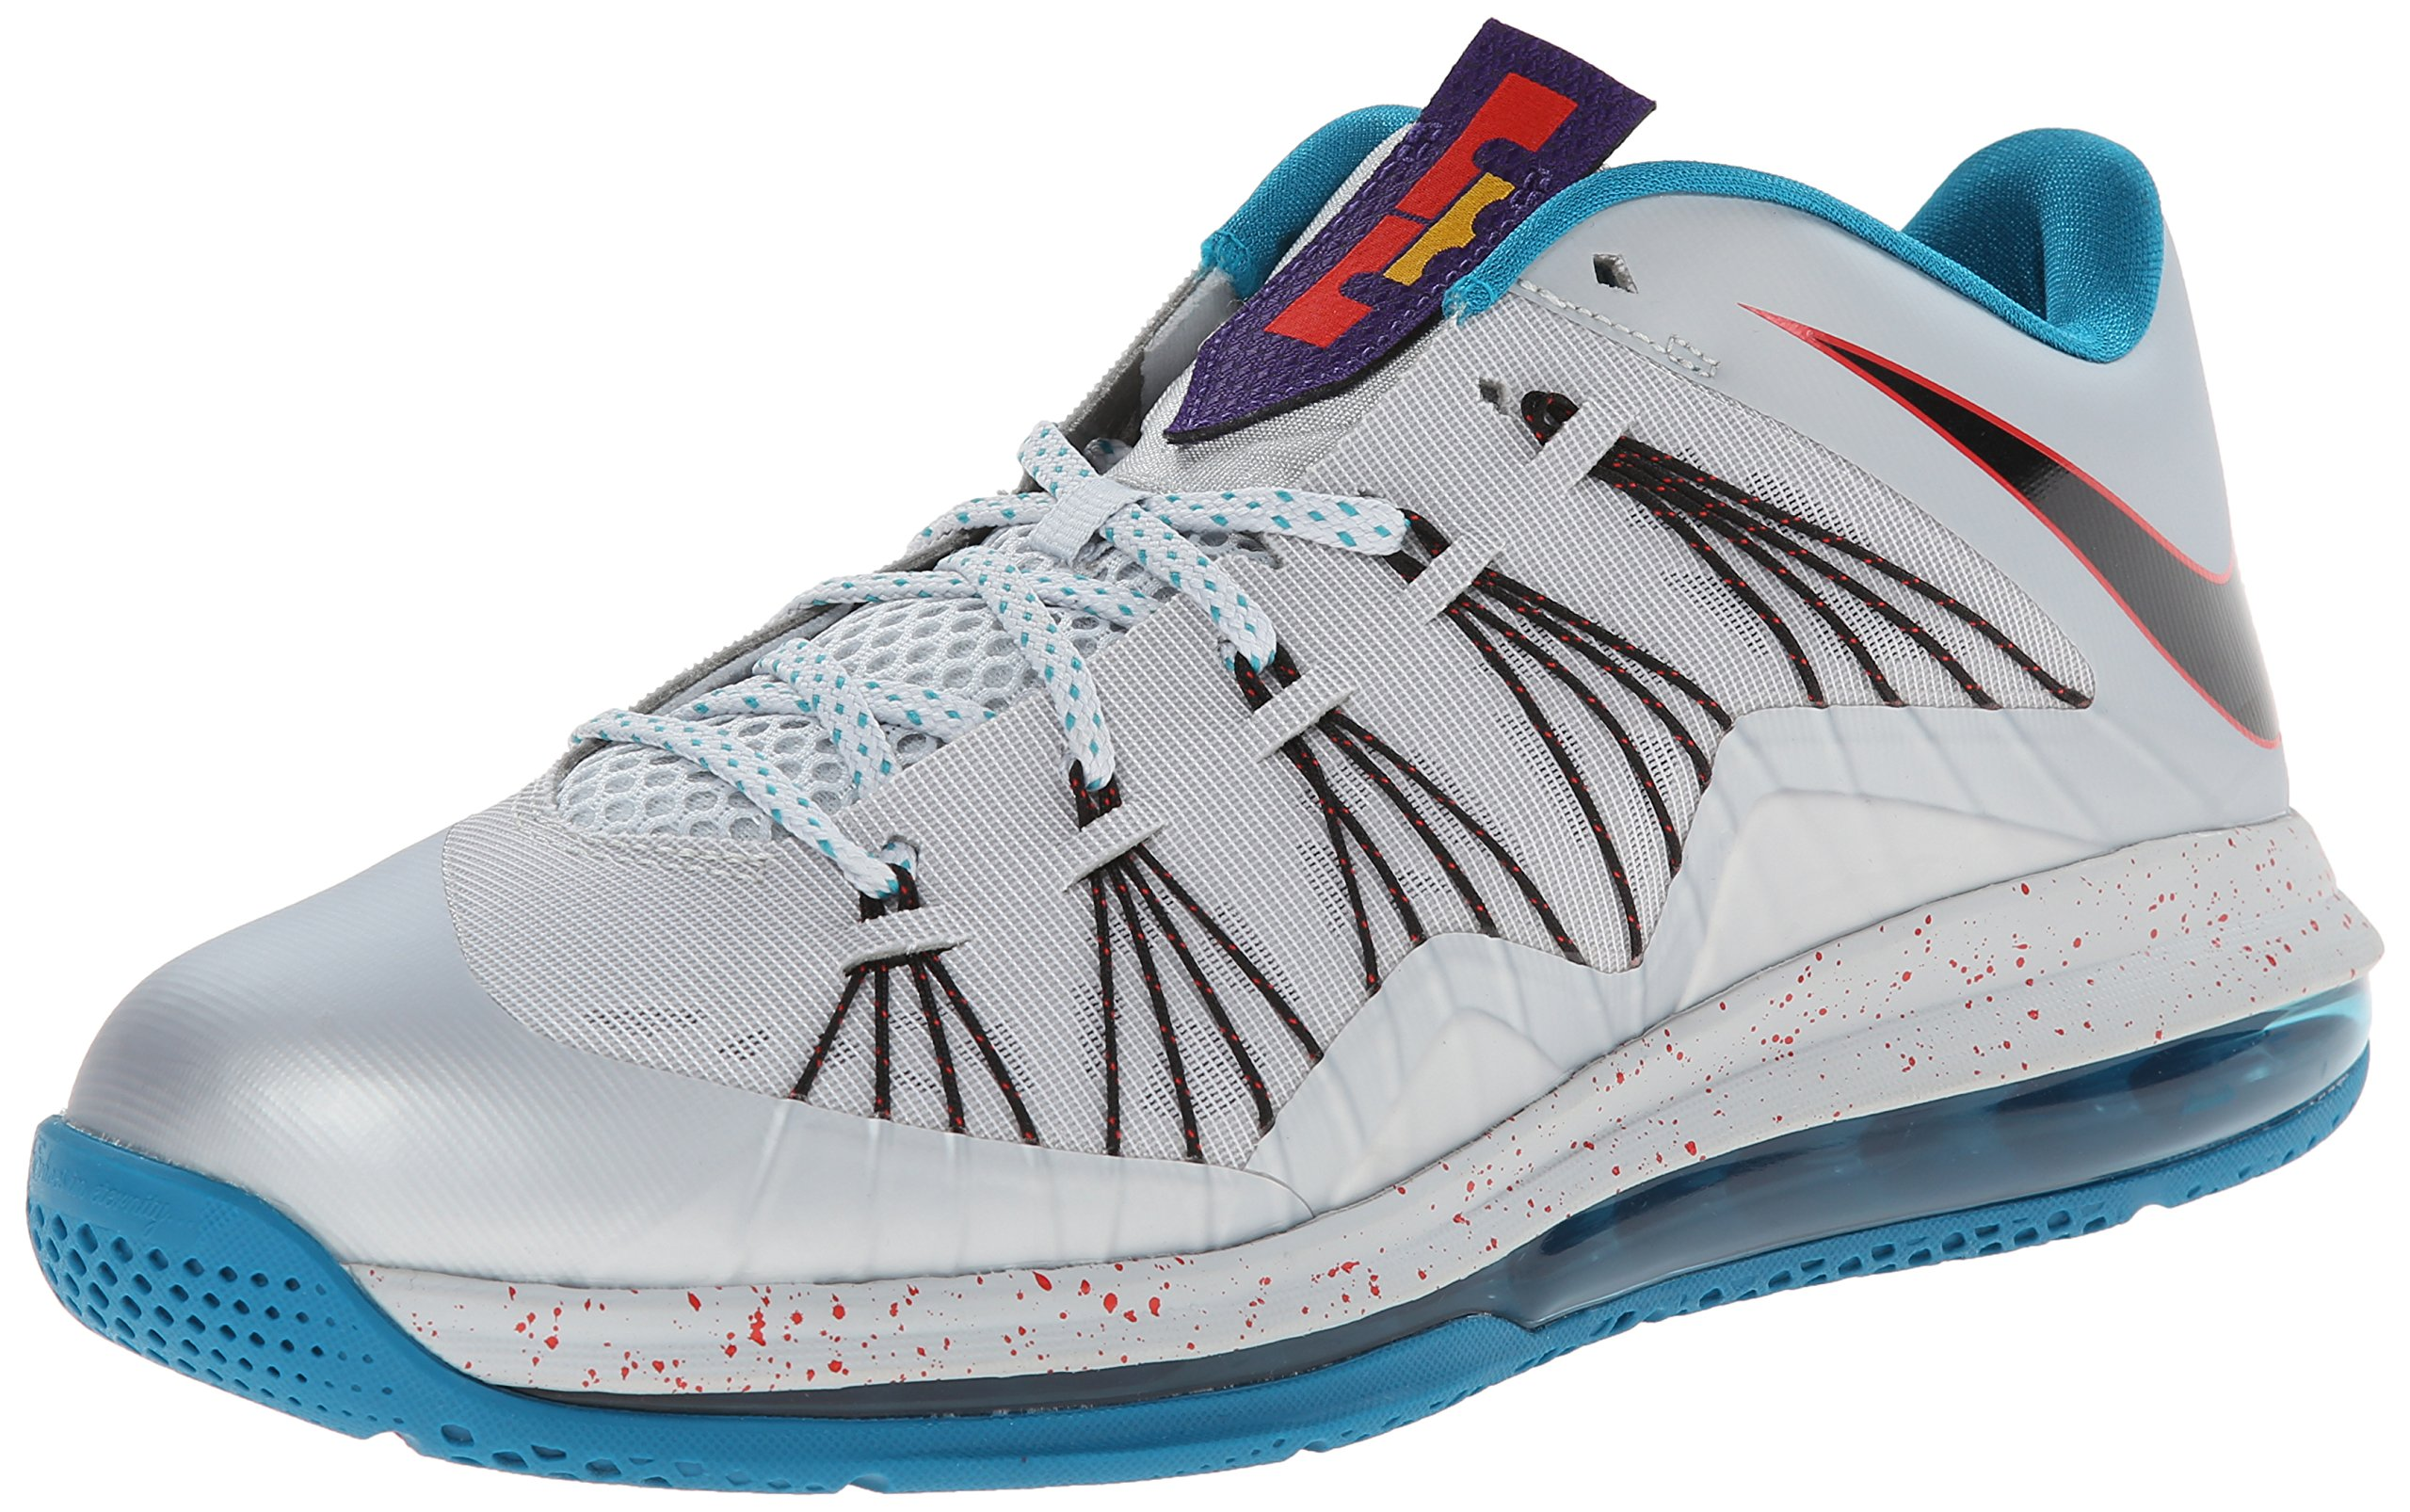 finest selection f9d79 b8b5a Galleon - NIKE Men s Air Max Lebron X Low Basketball Shoes (11, Metallic  Platinum Black-Tropical Teal-Chilling   579765 002)